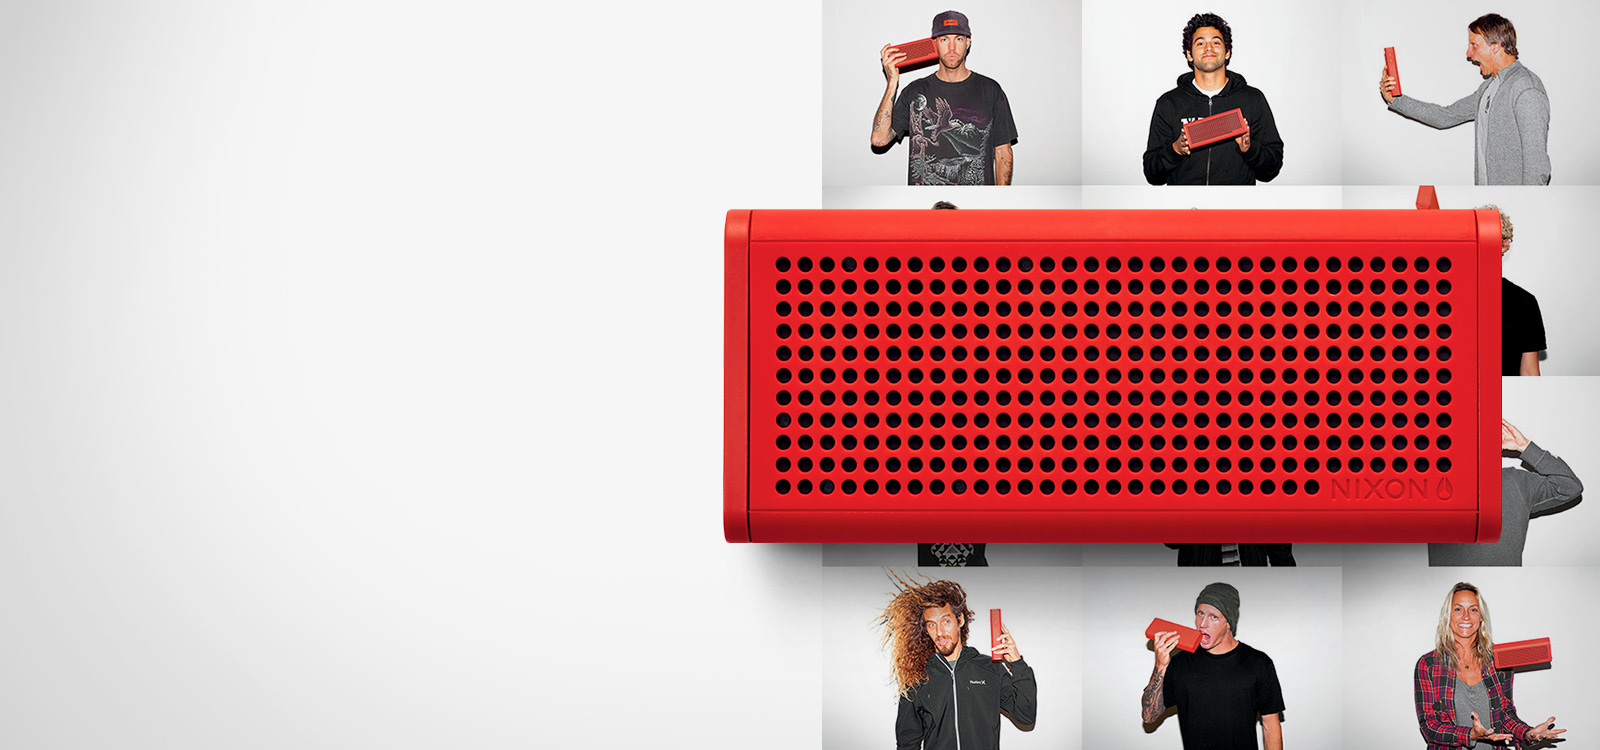 Nixon responsive website for Blaster wireless speaker